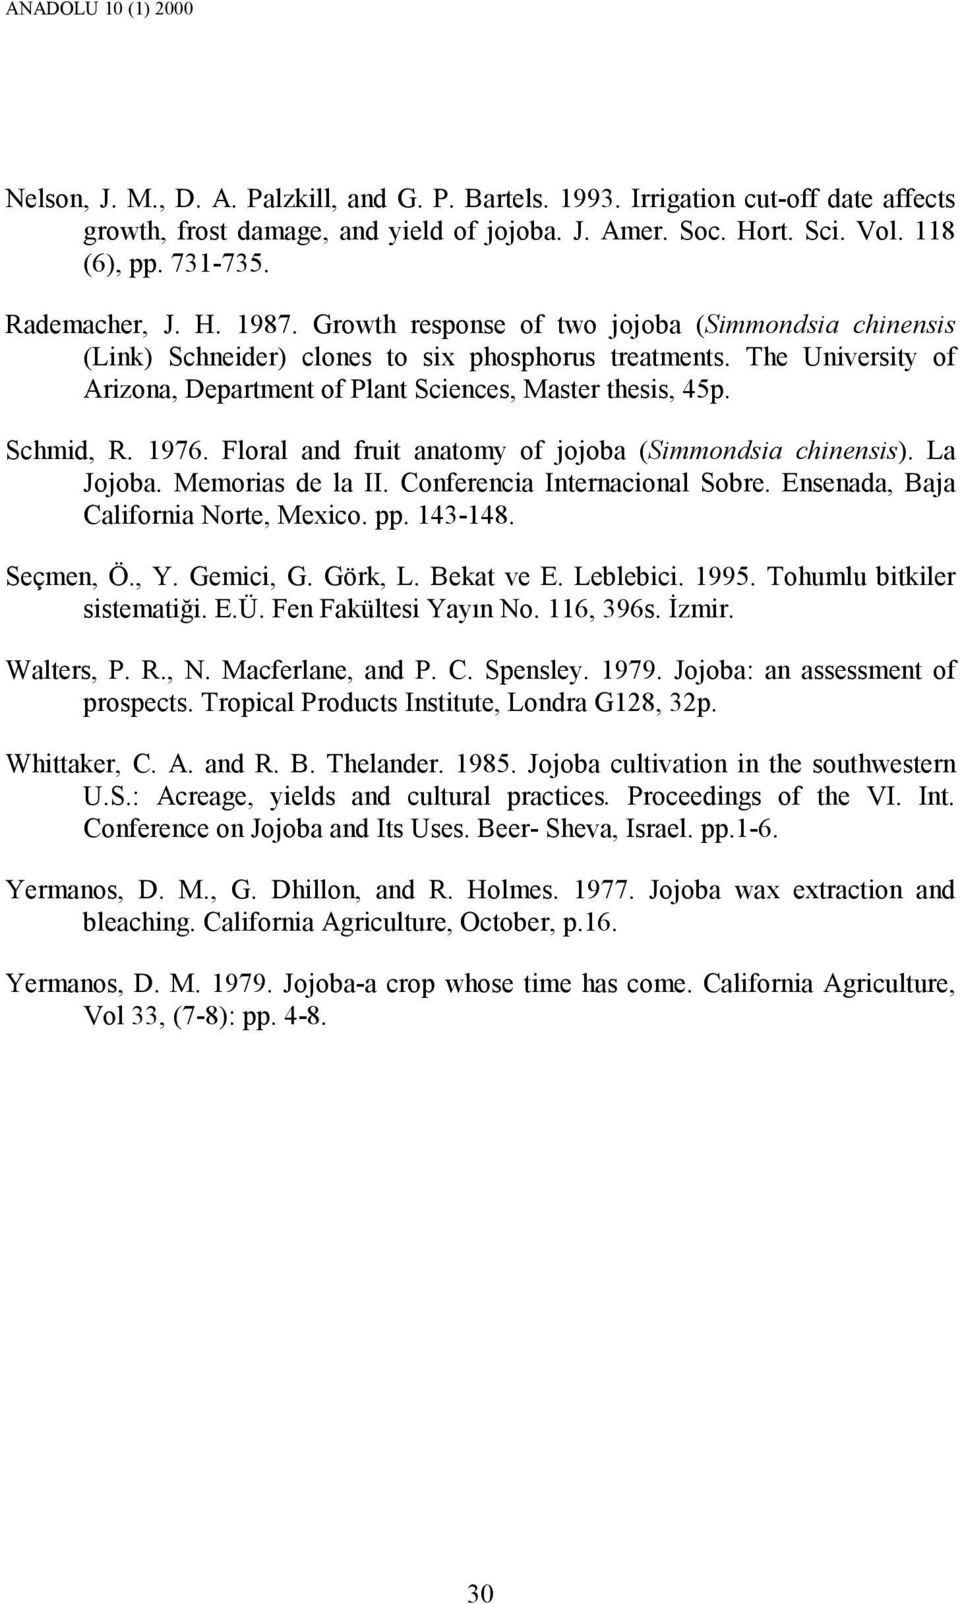 The University of Arizona, Department of Plant Sciences, Master thesis, 45p. Schmid, R. 1976. Floral and fruit anatomy of jojoba (Simmondsia chinensis). La Jojoba. Memorias de la II.